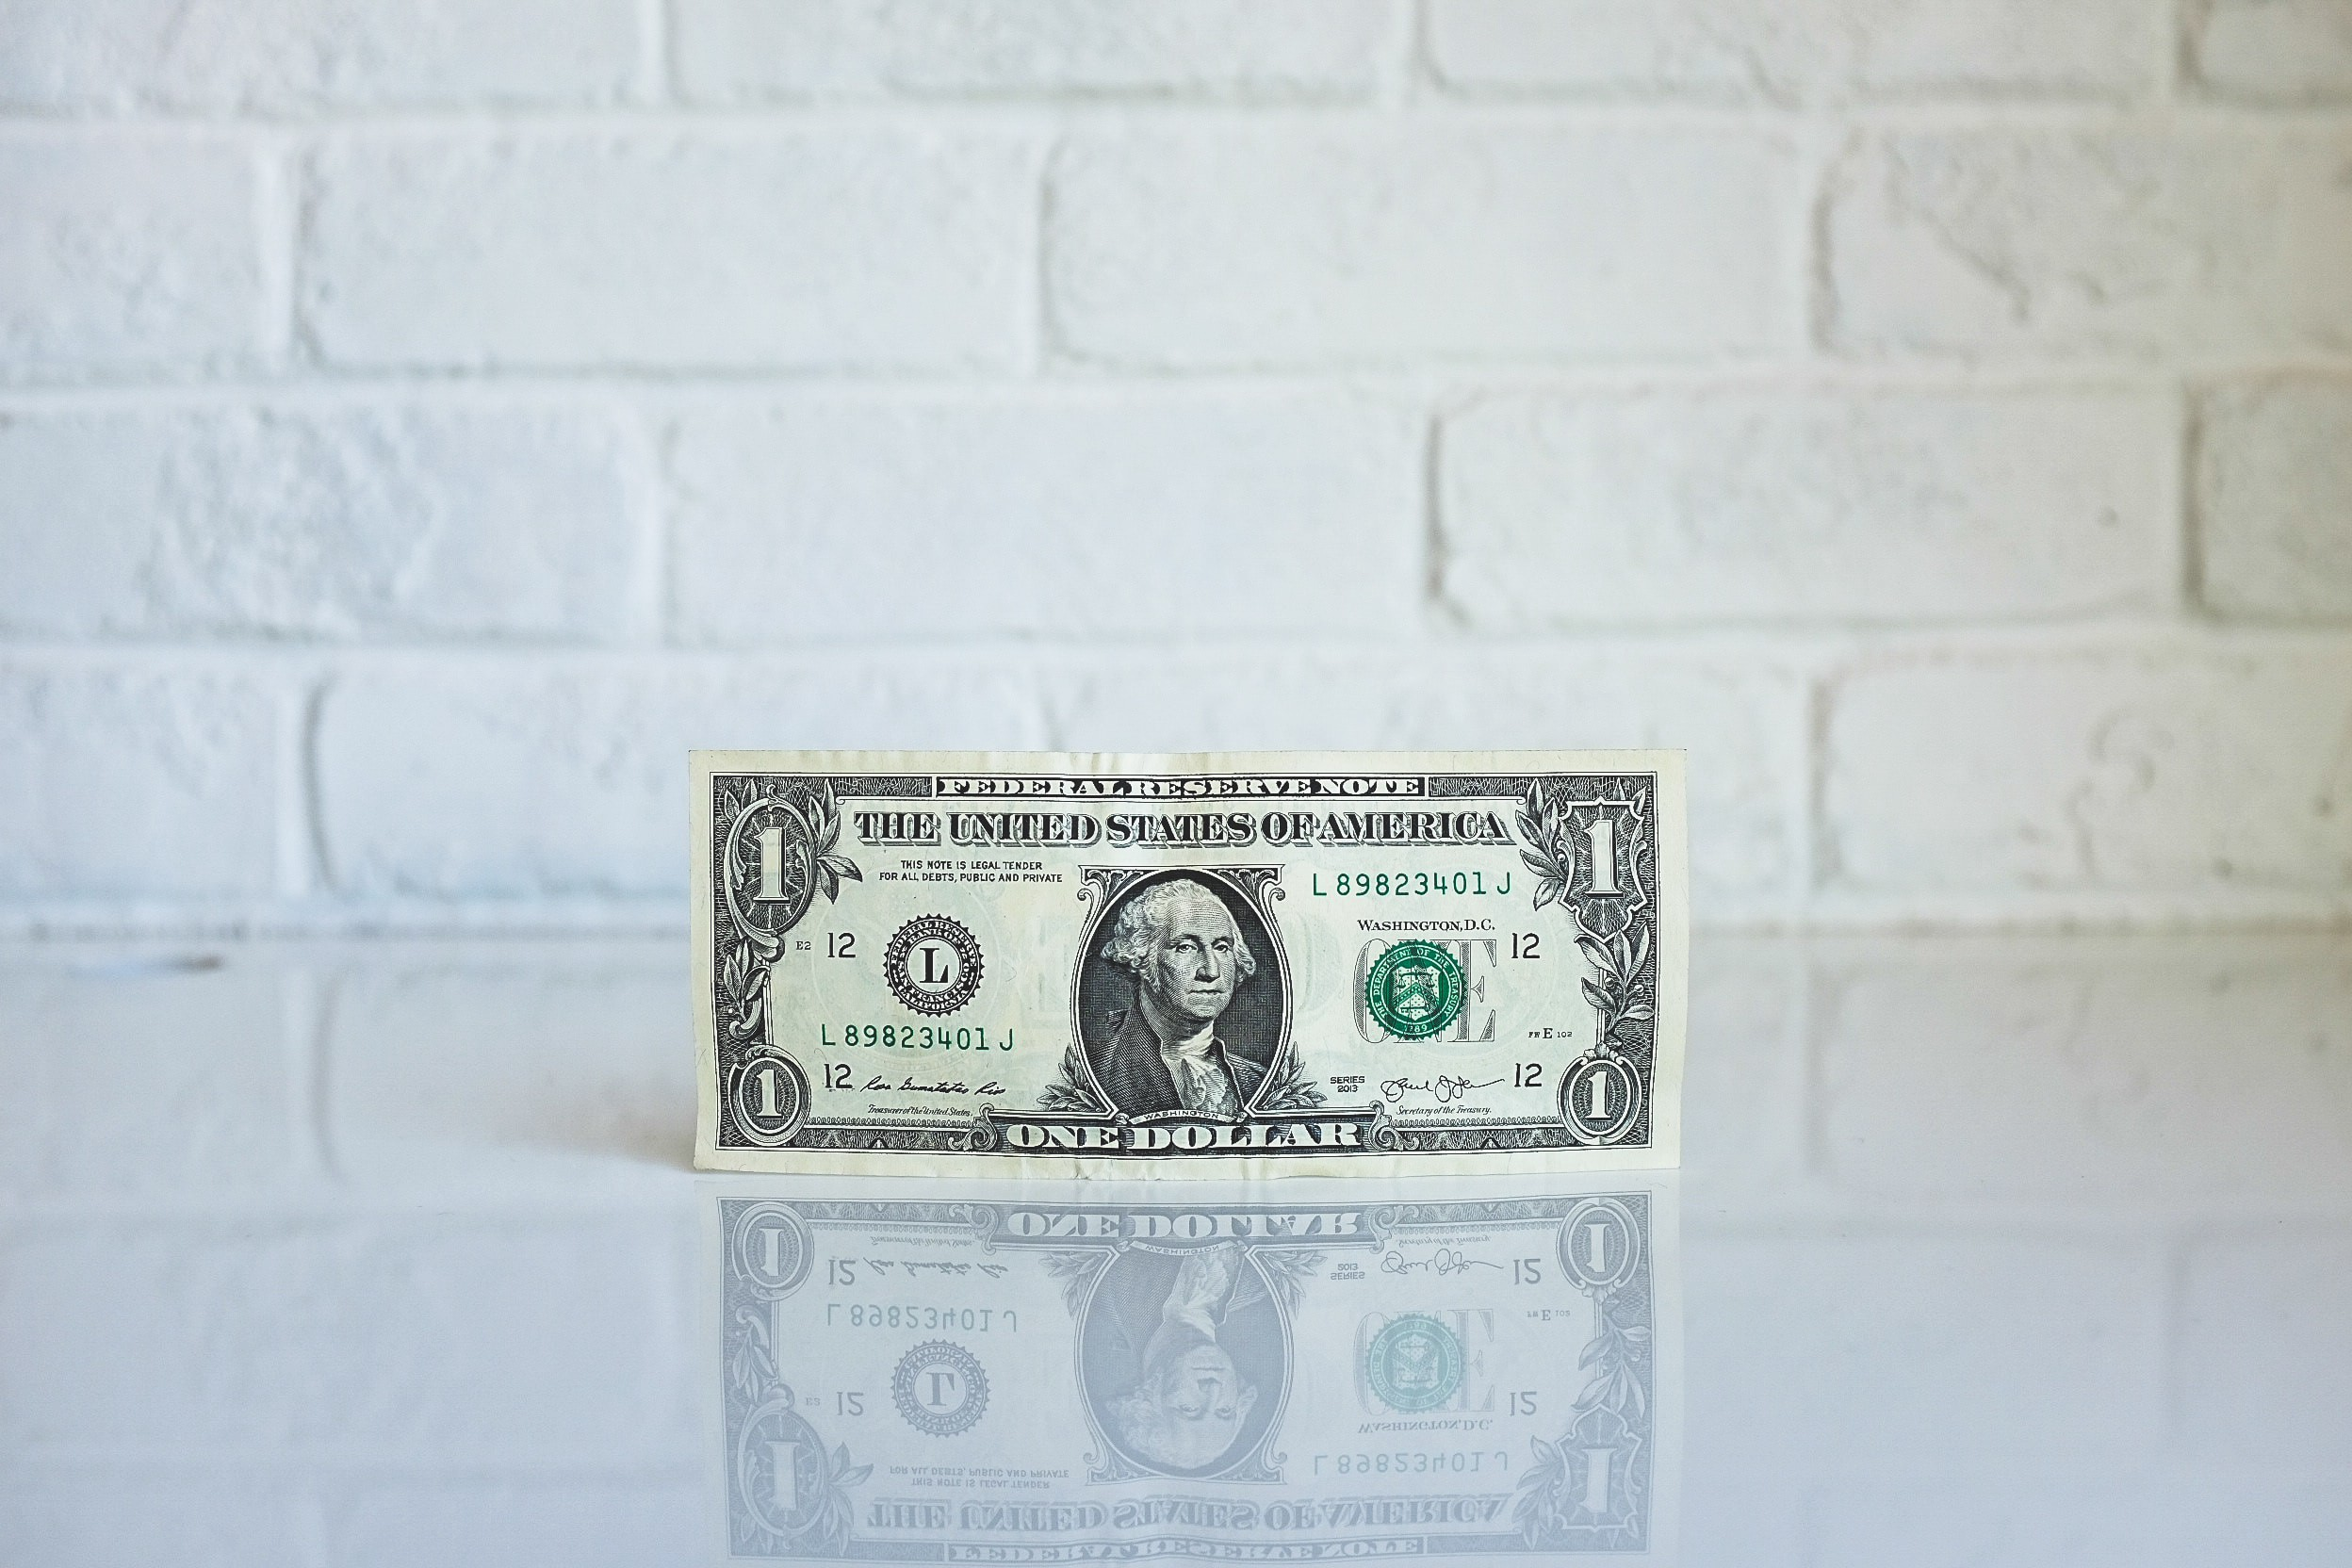 One dollar note reflecting on a shiny wall depicting ROI